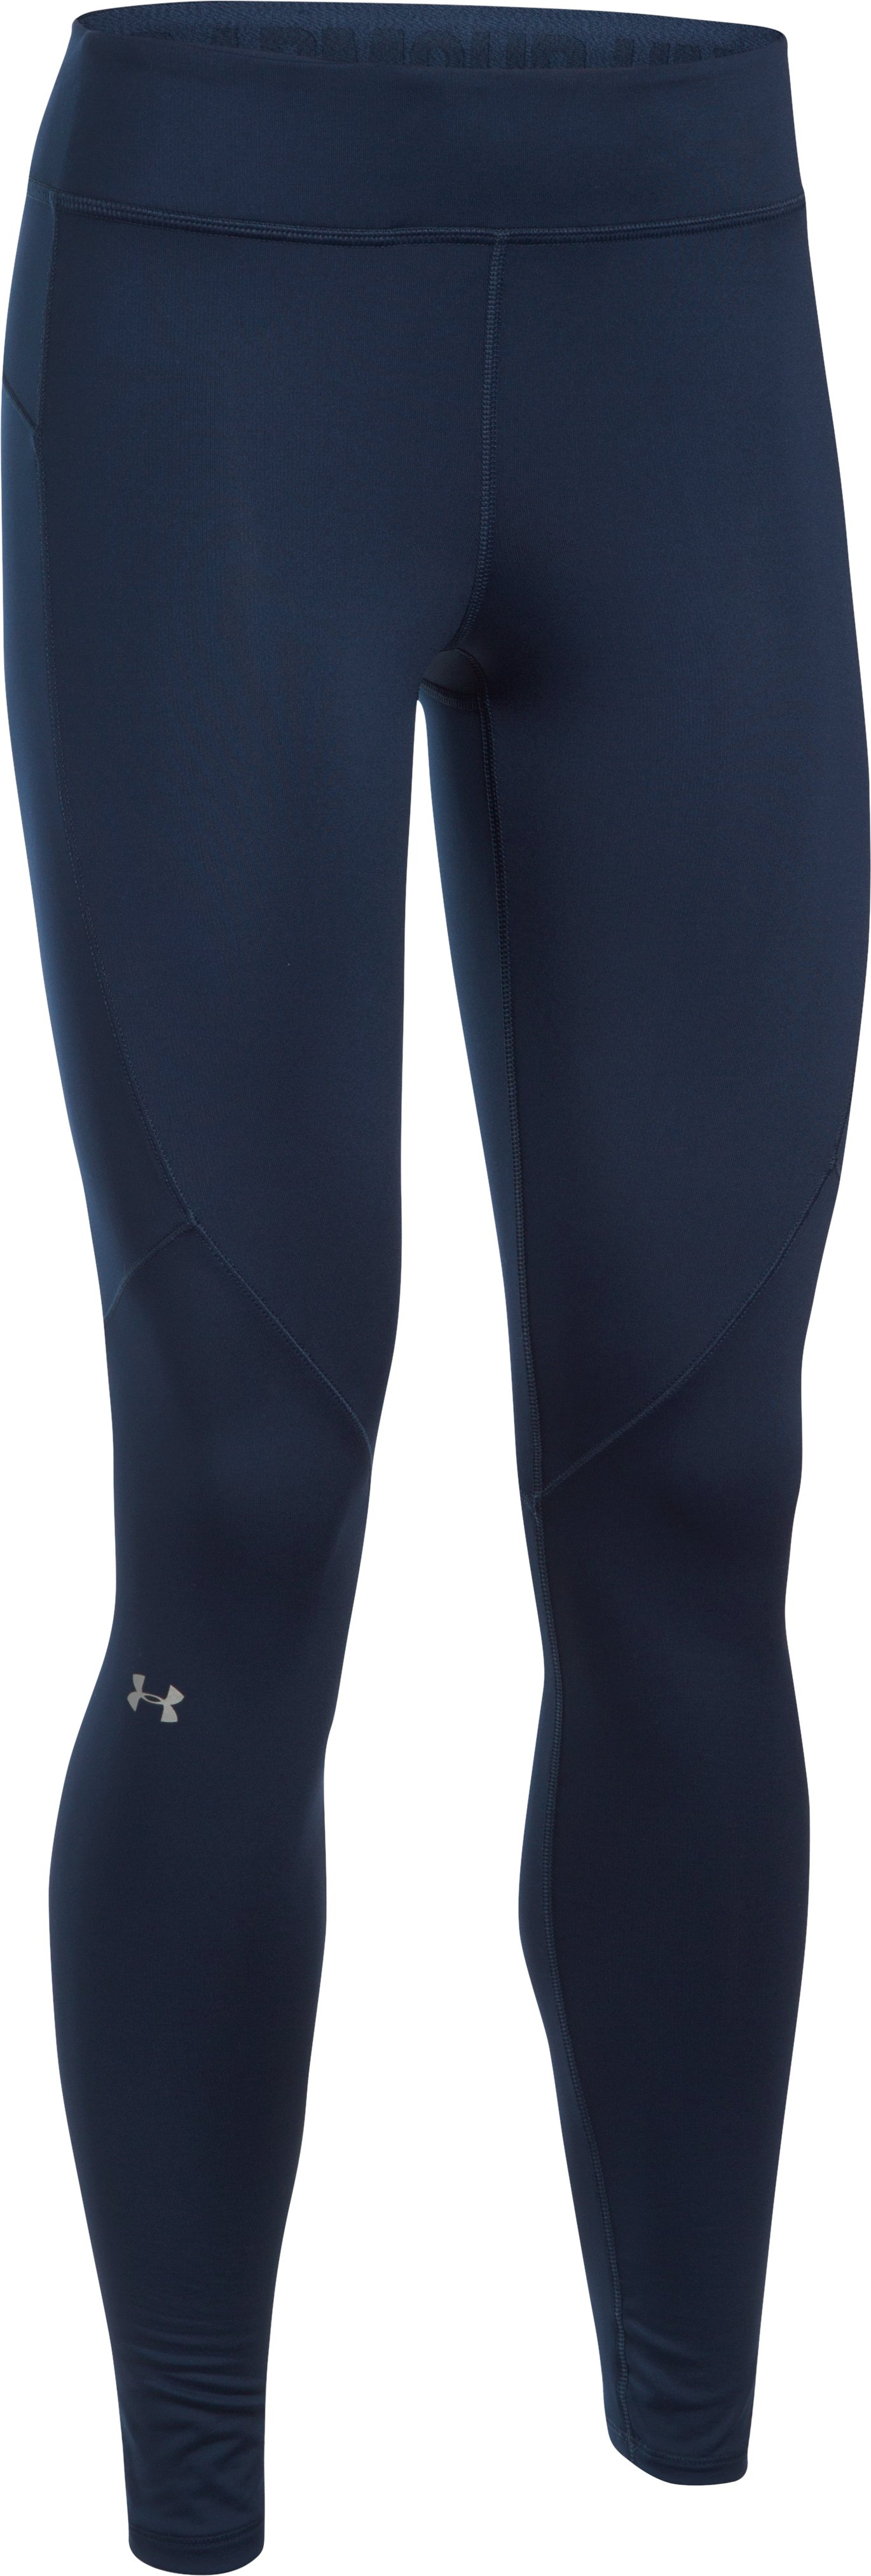 Women's ColdGear® Armour Leggings, Midnight Navy, undefined